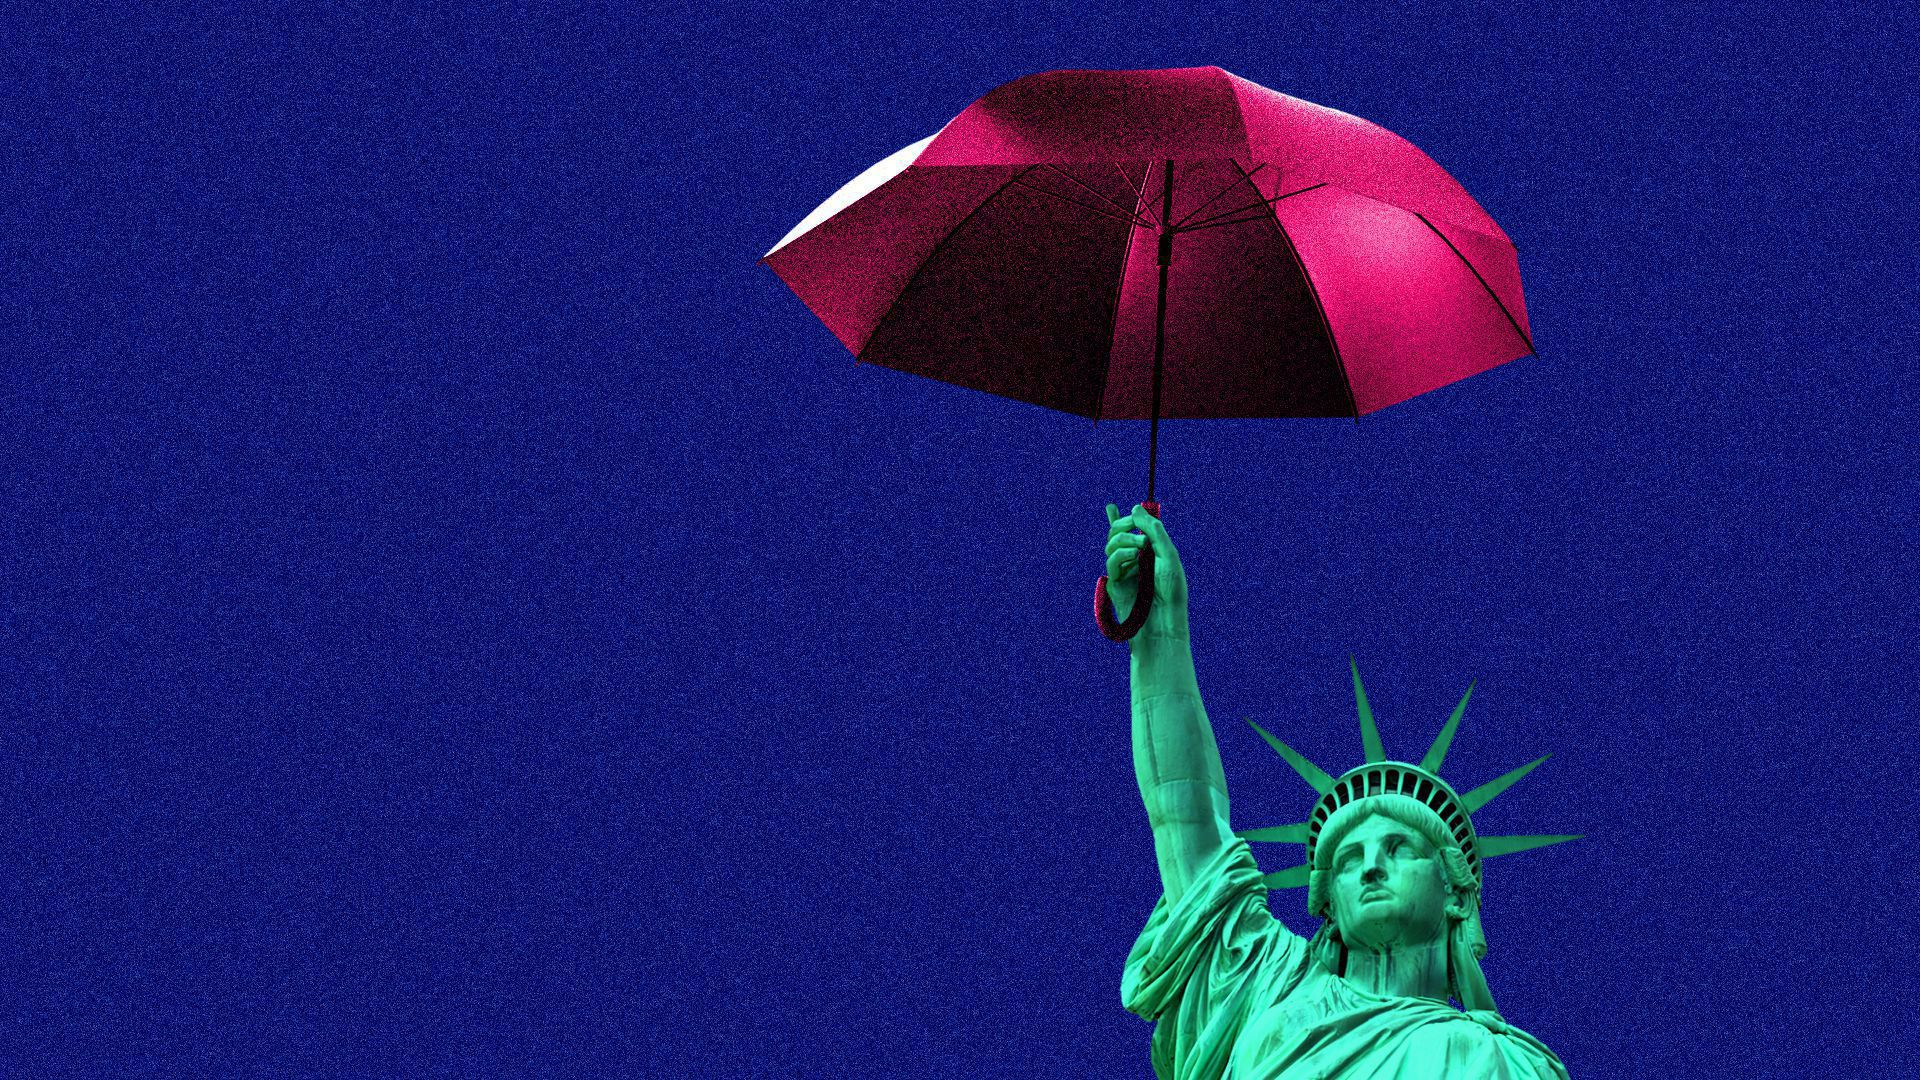 An illustration of the statue of liberty holding an umbrella.